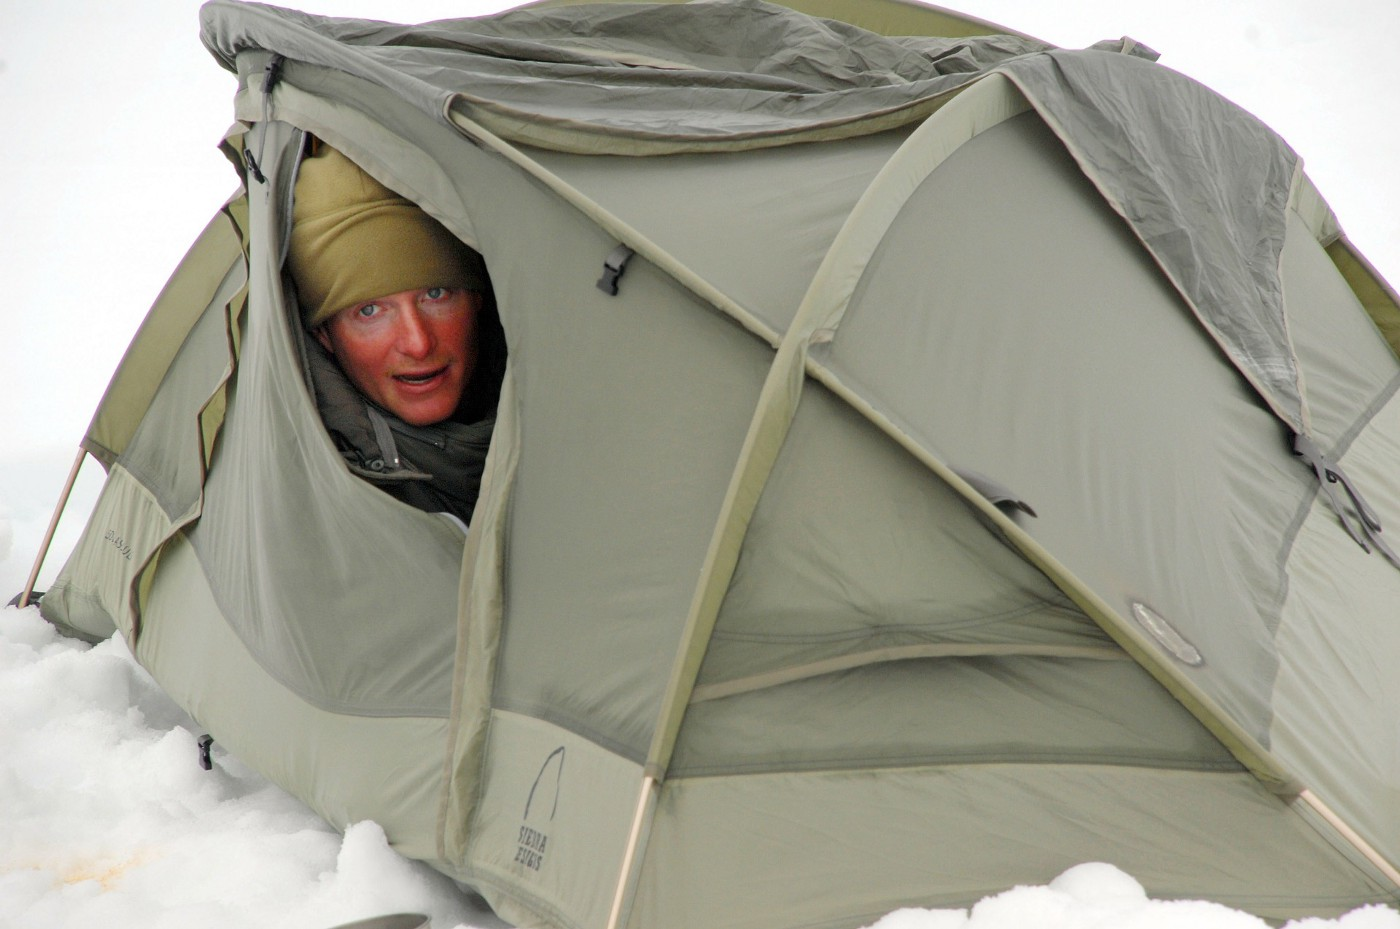 A woman with a sunburned face and winter hat peeking out of a tent surrounded by snow.